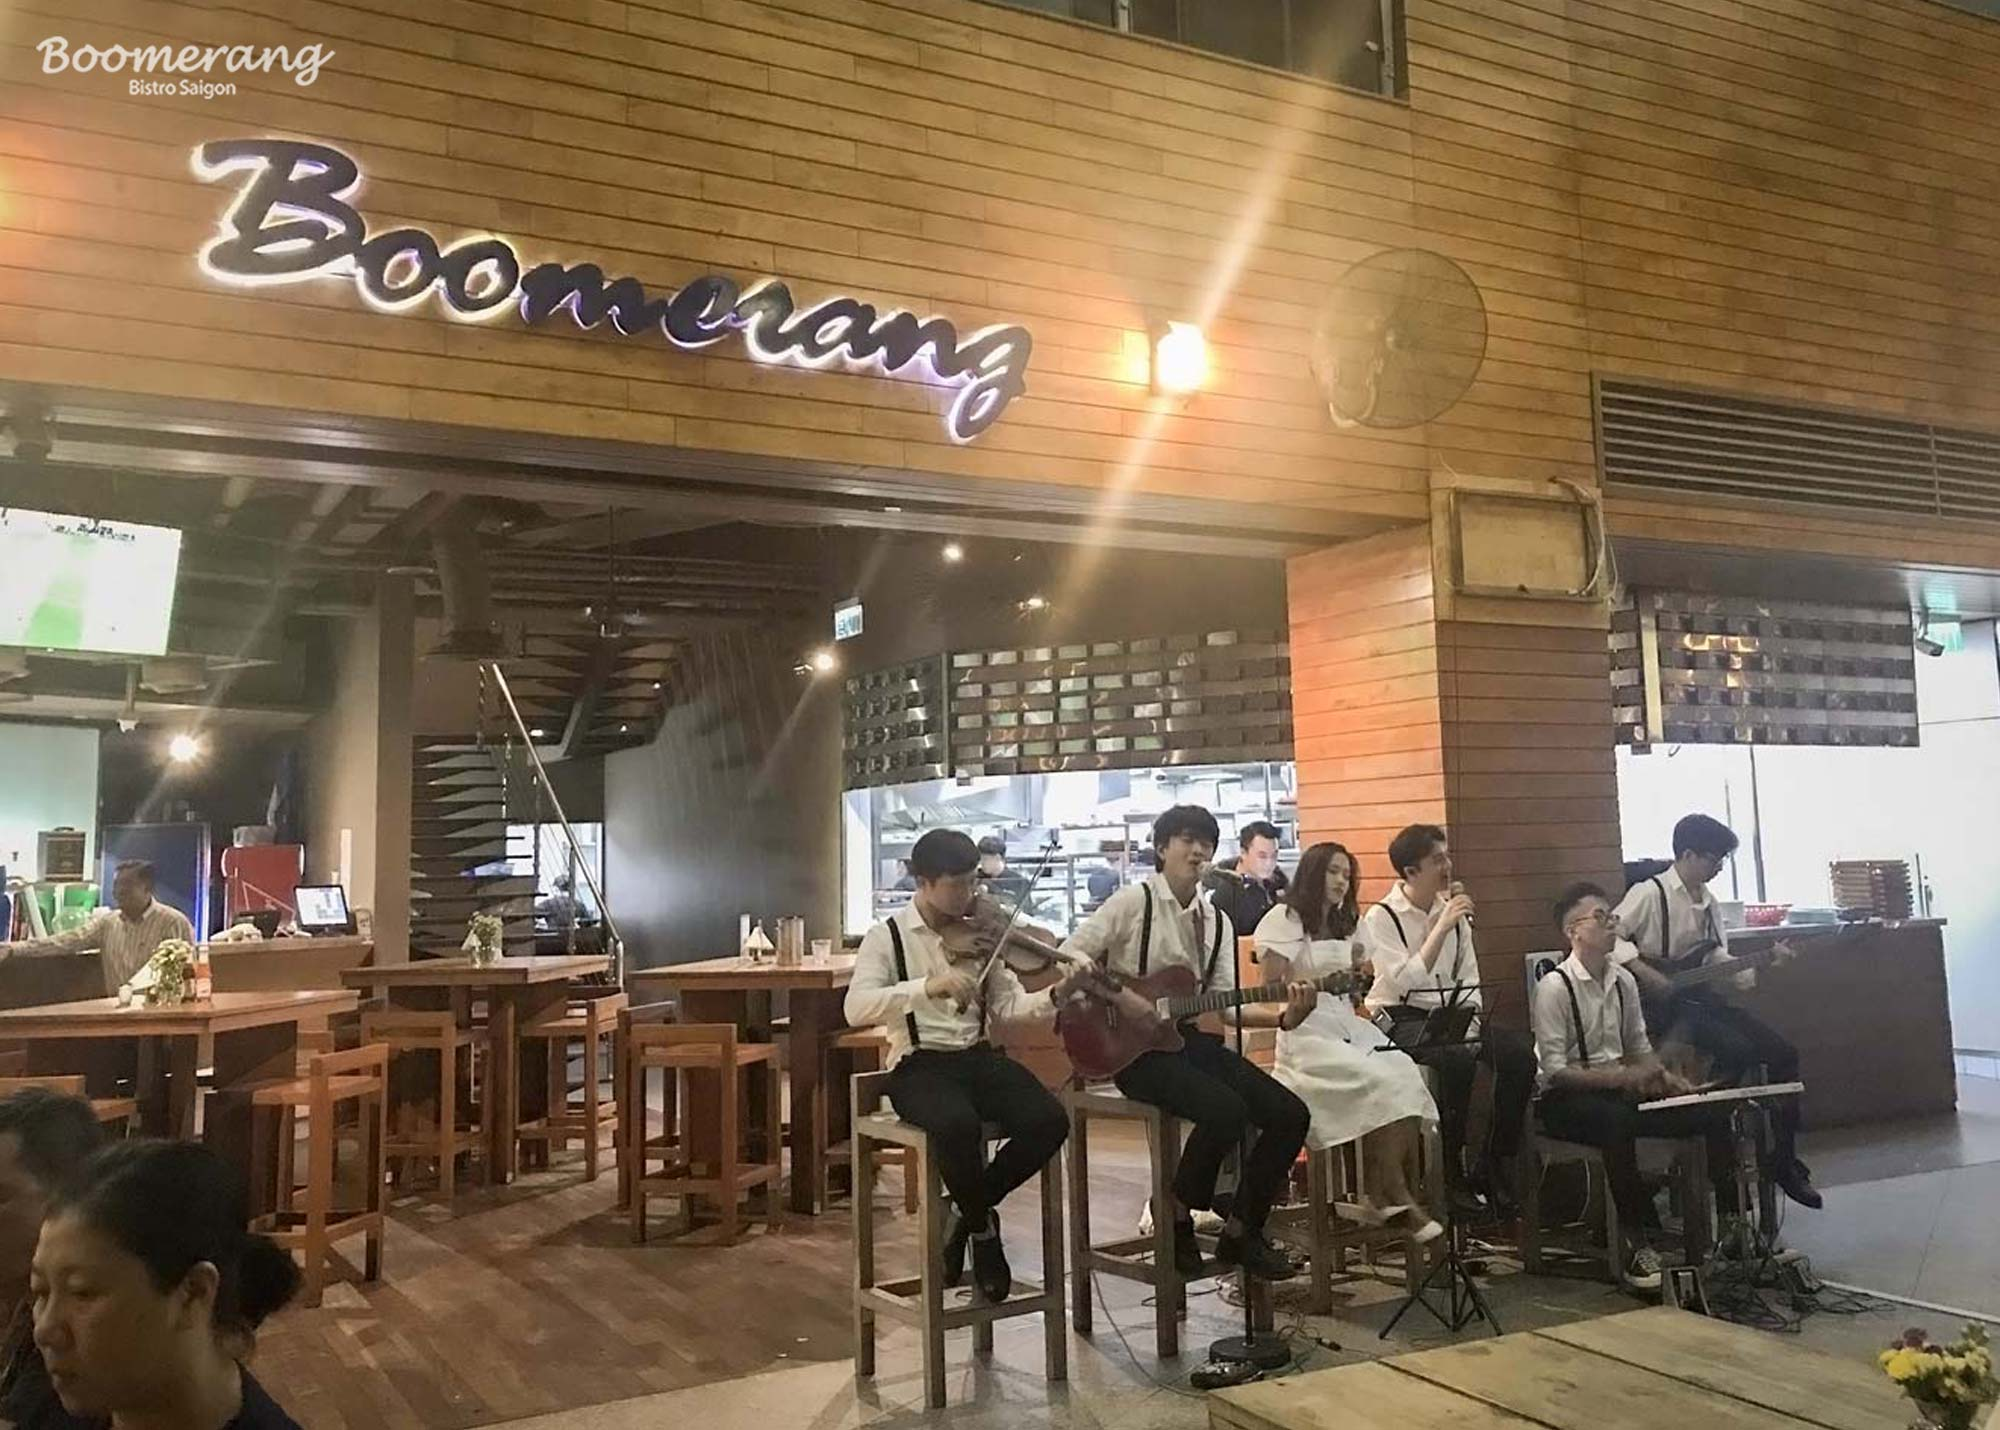 Accoustics bands performed live music at Boomerang Restaurant